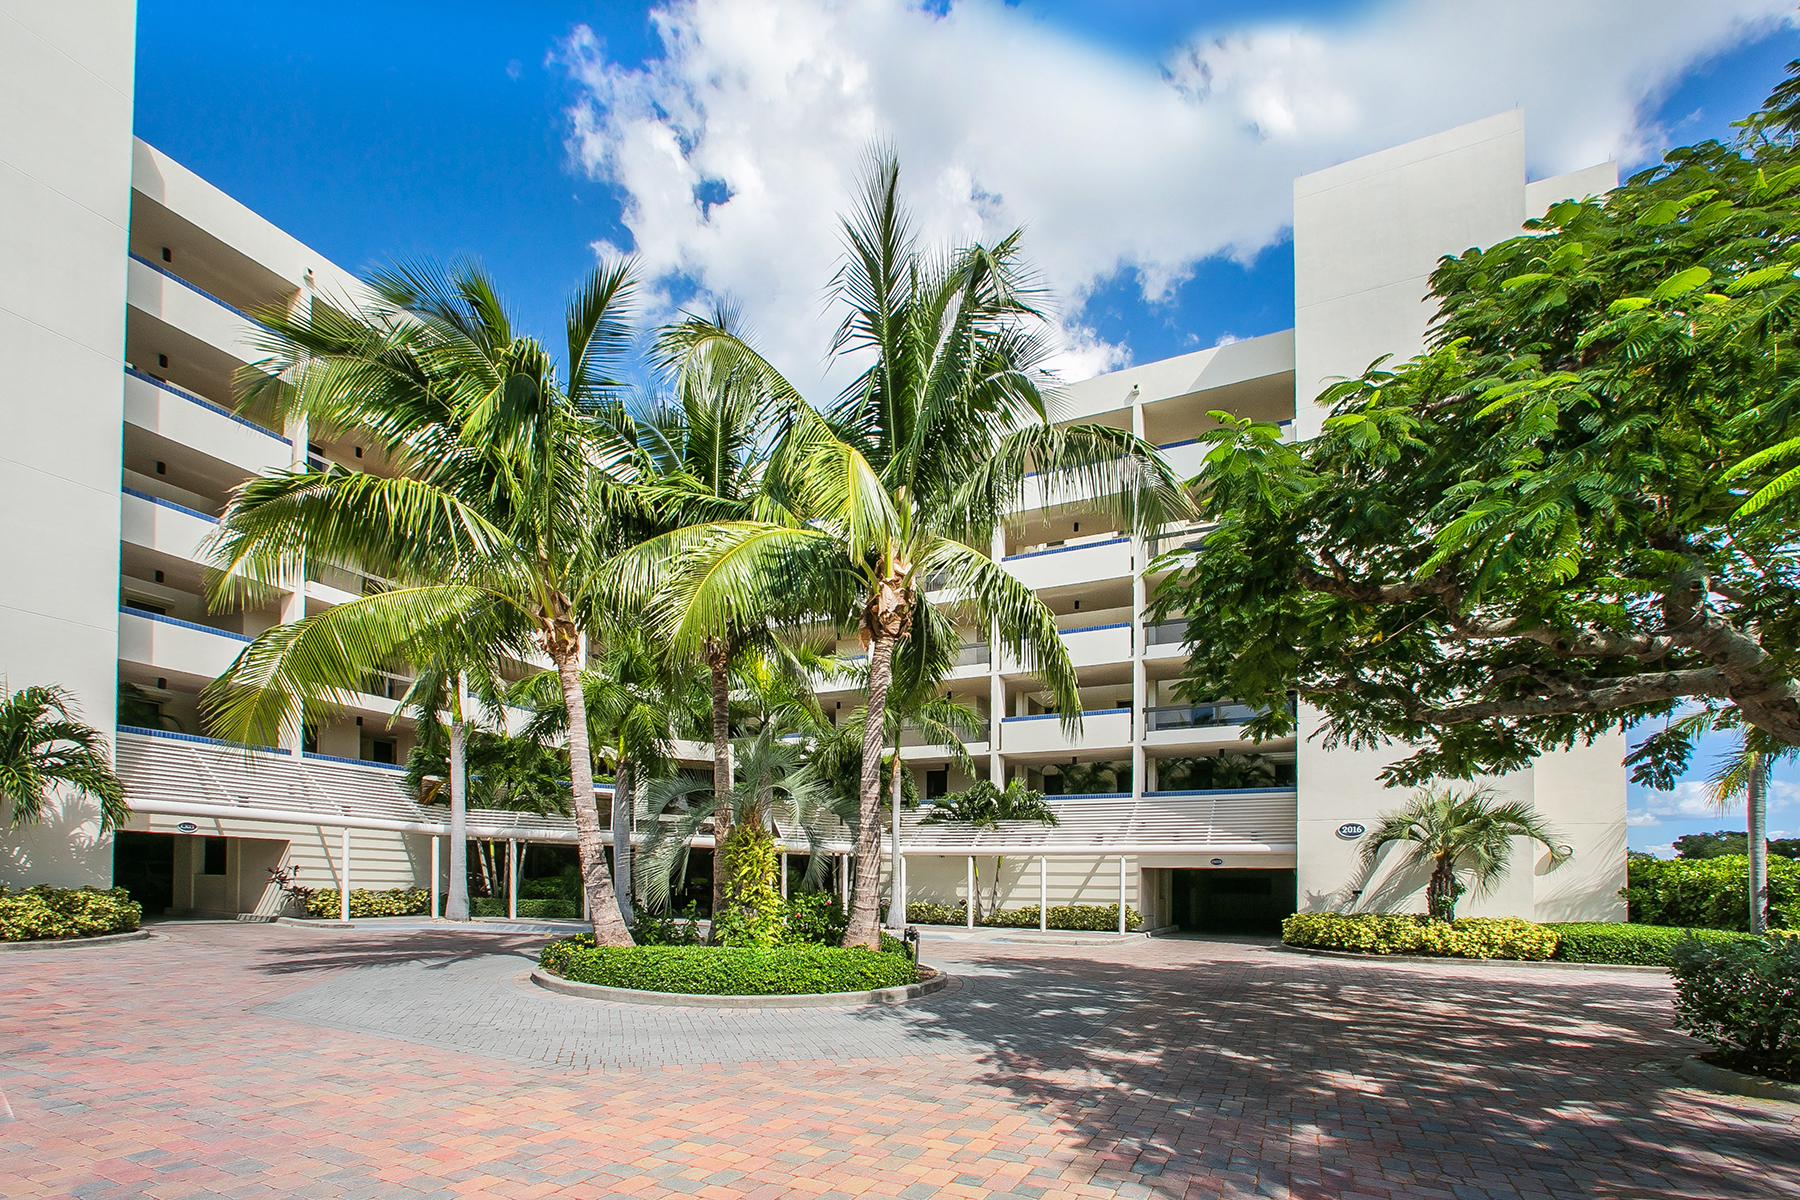 Condominium for Sale at FAIRWAY BAY 2 2016 Harbourside Dr 322 Longboat Key, Florida, 34228 United States